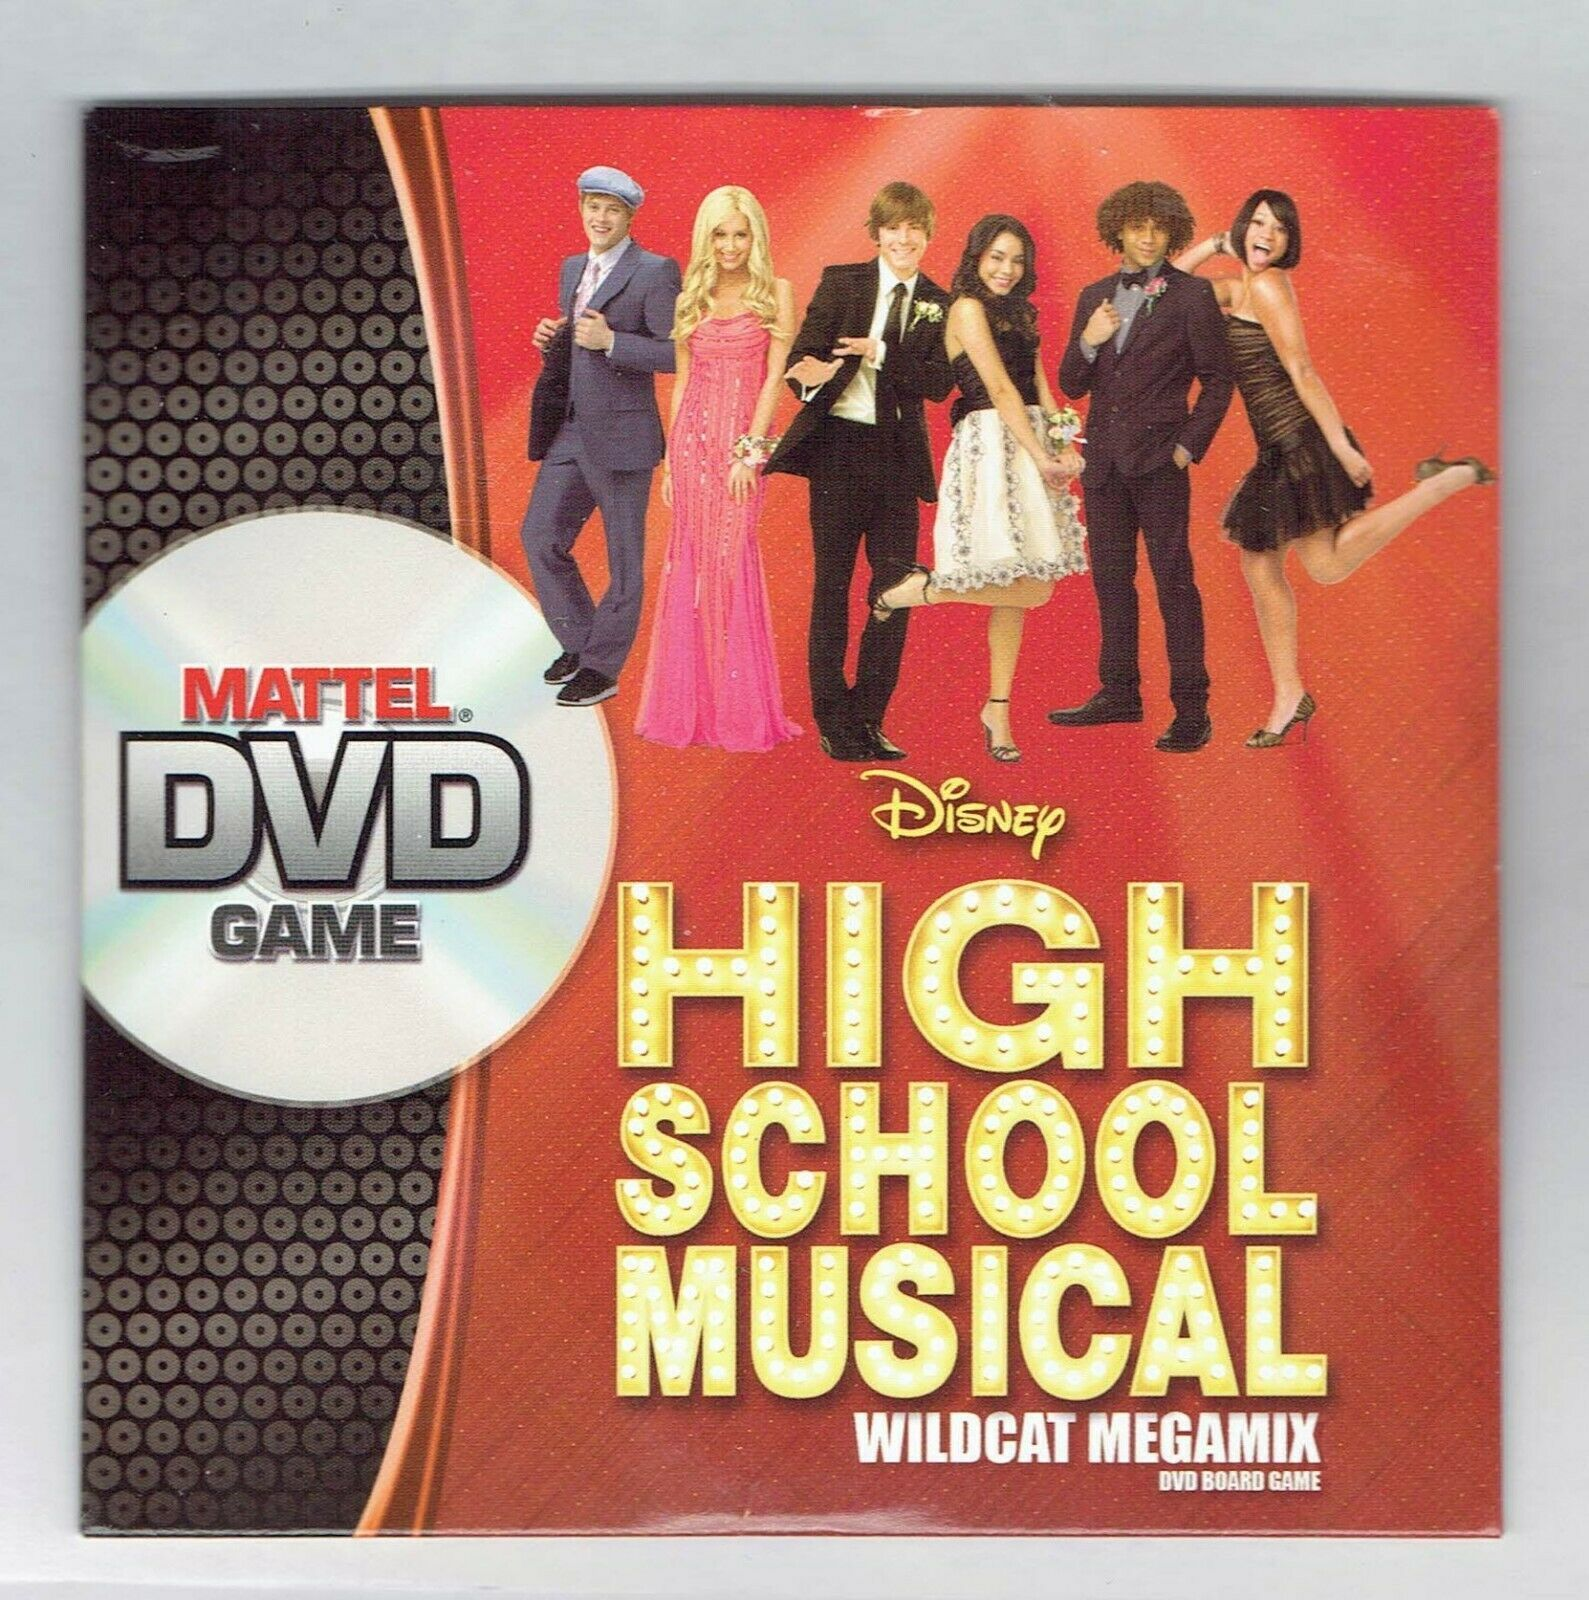 Primary image for 2008 Mattel High School Musical DVD Game Replacement Original DVD